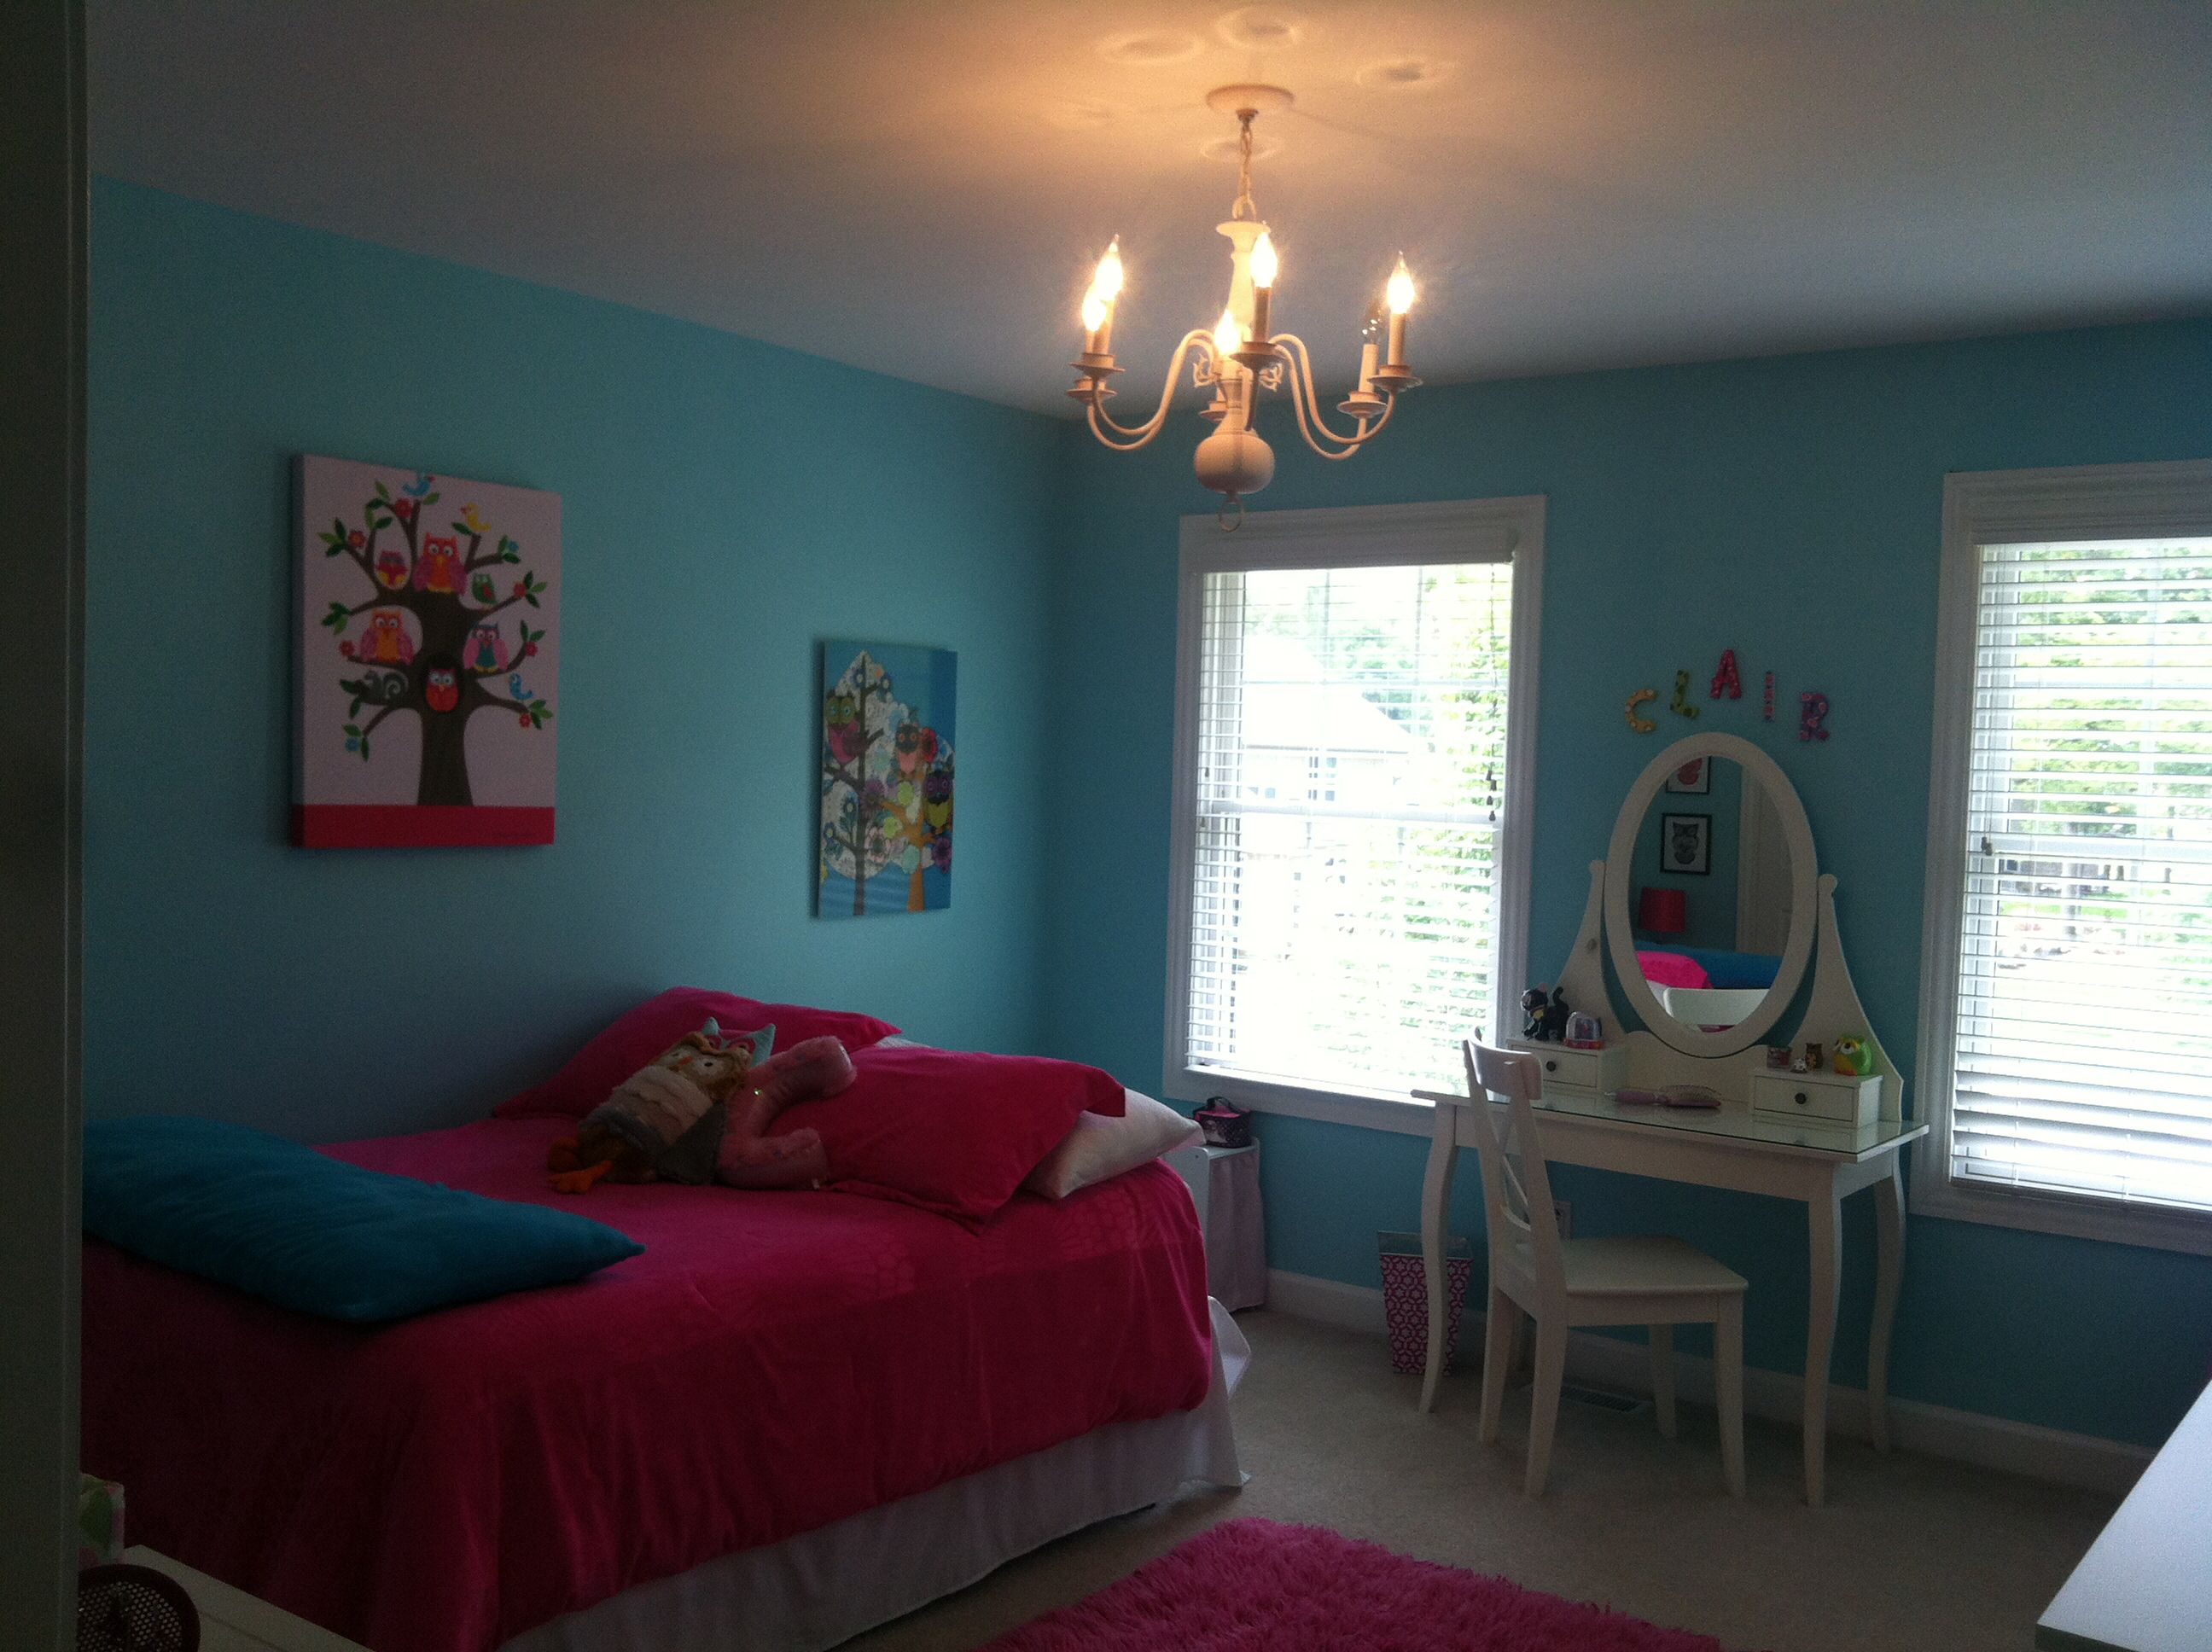 Cute girls bedroom designed by Clair.